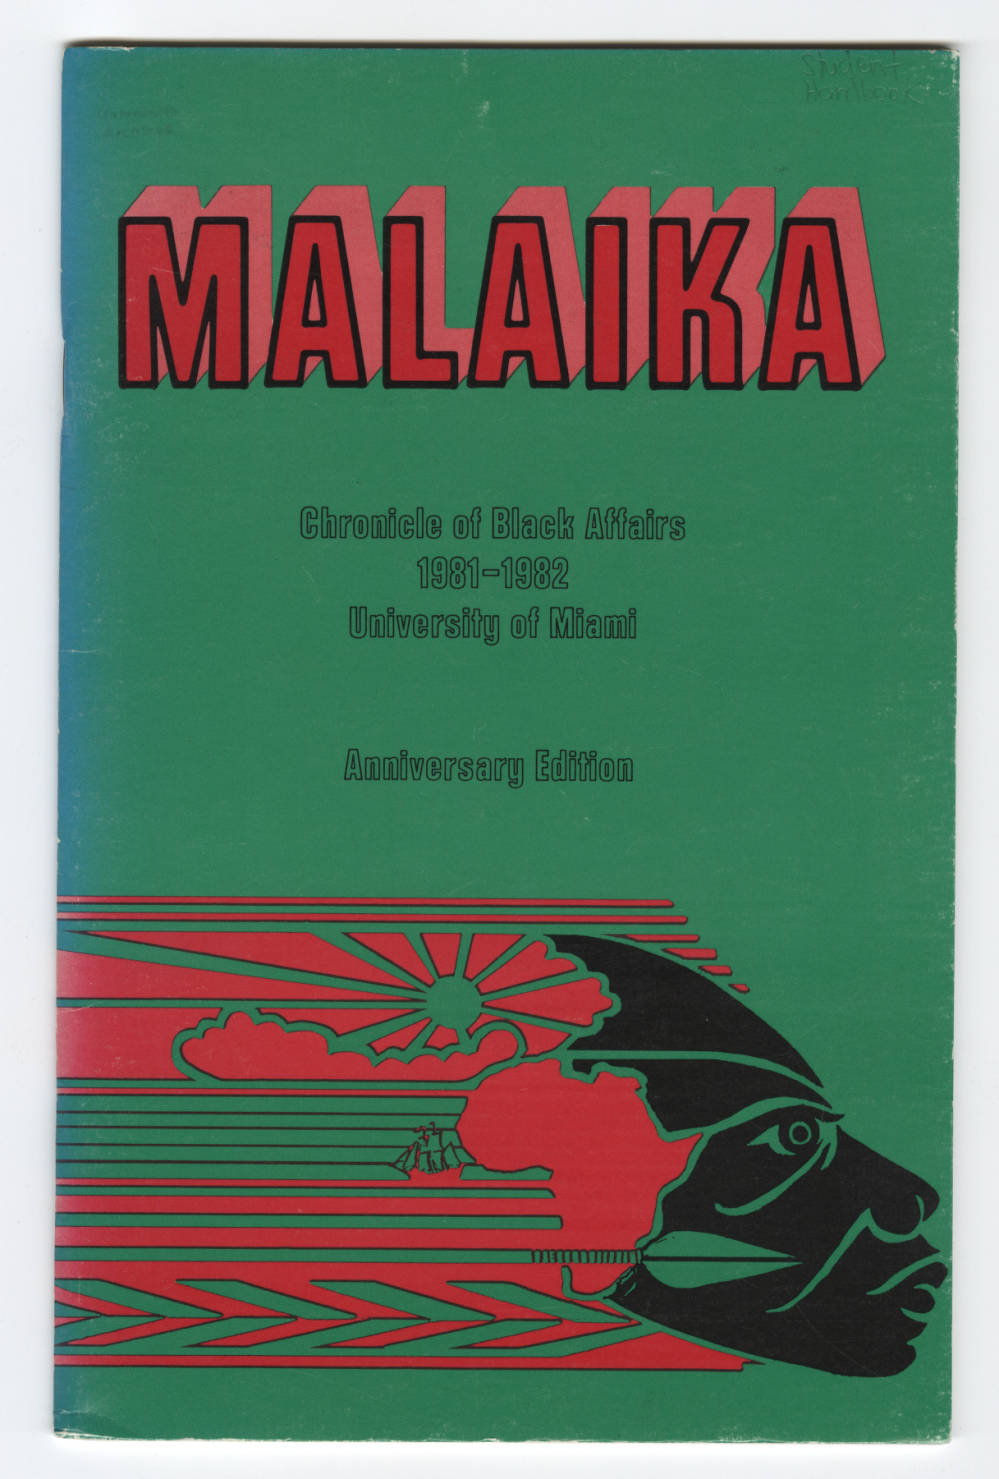 cover of Malaika handbook, green background, red lettering, graphic design